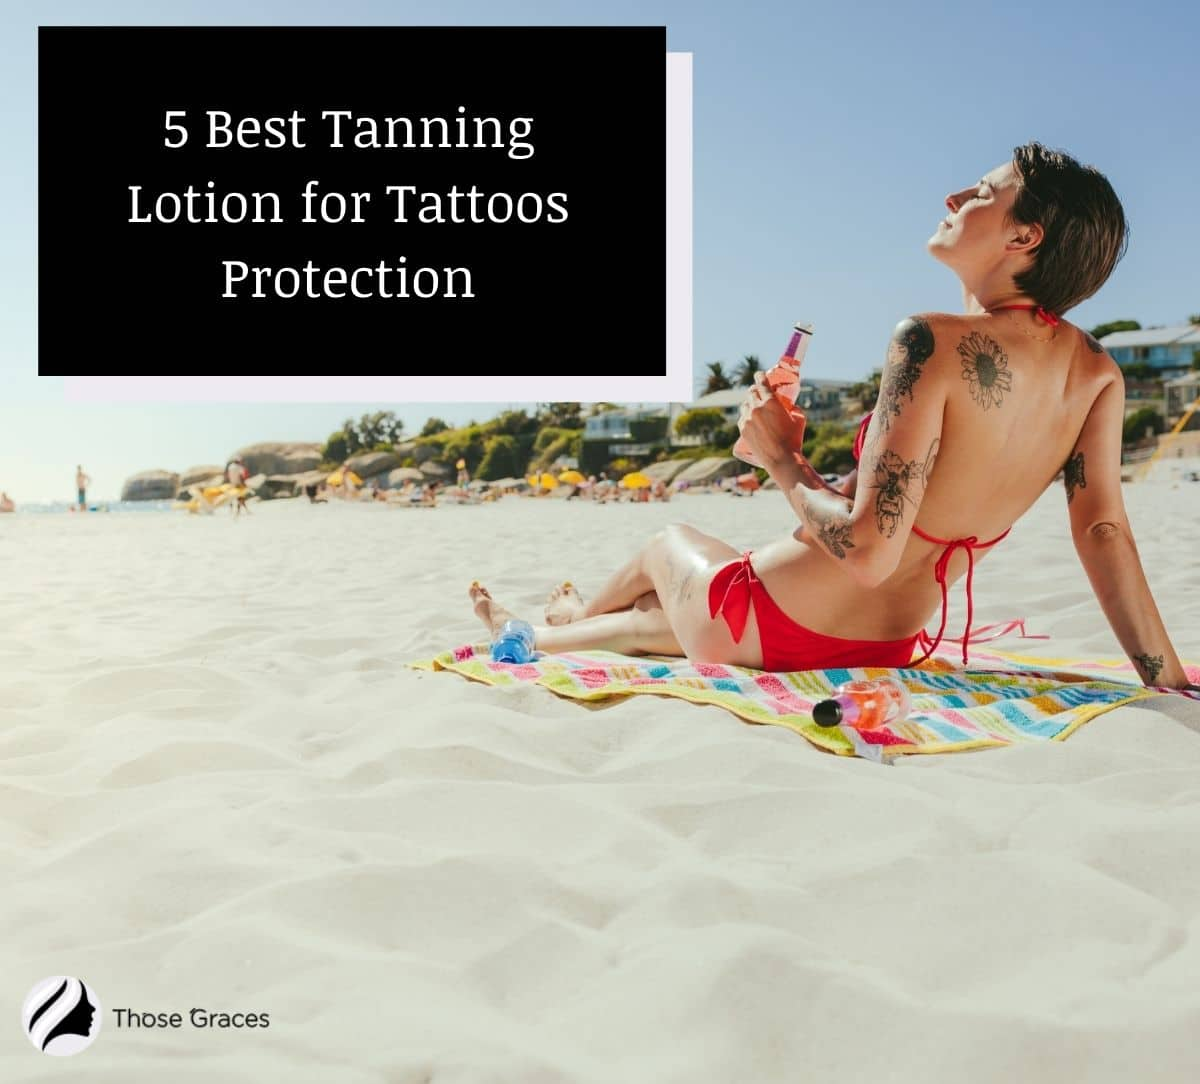 lady with tattoos tanning in the beach while using the best Tanning Lotion for Tattoos